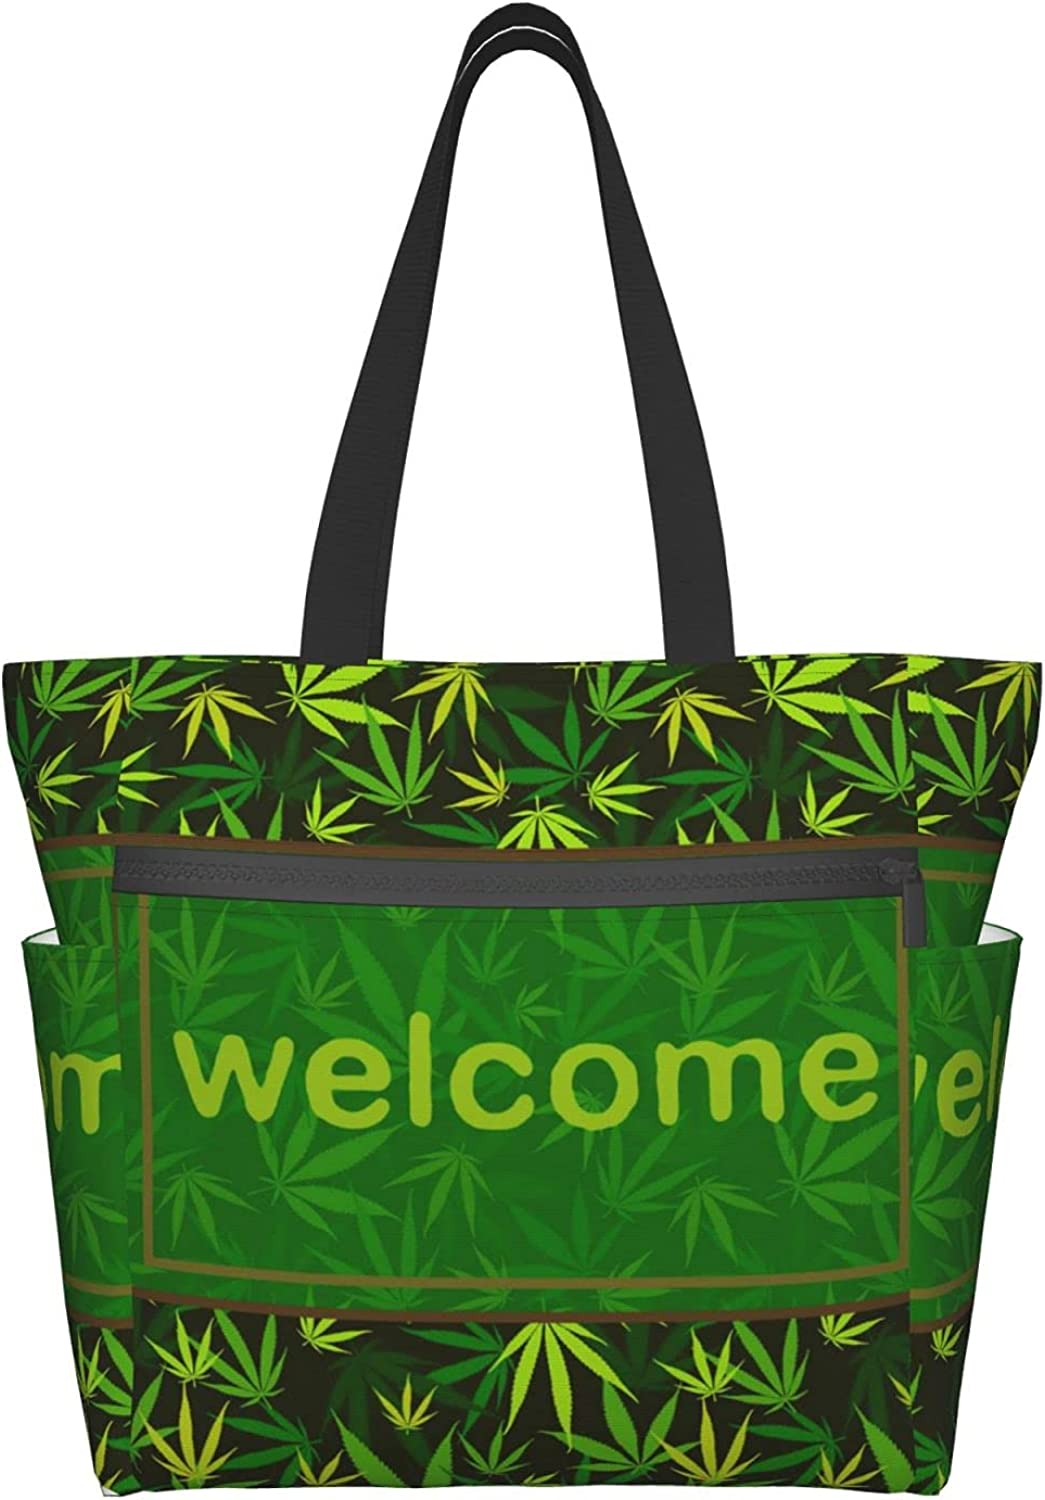 Tote Bag with Zipper for Cheap sale Women Welcome Bags Green Great interest Han Leaf Daily